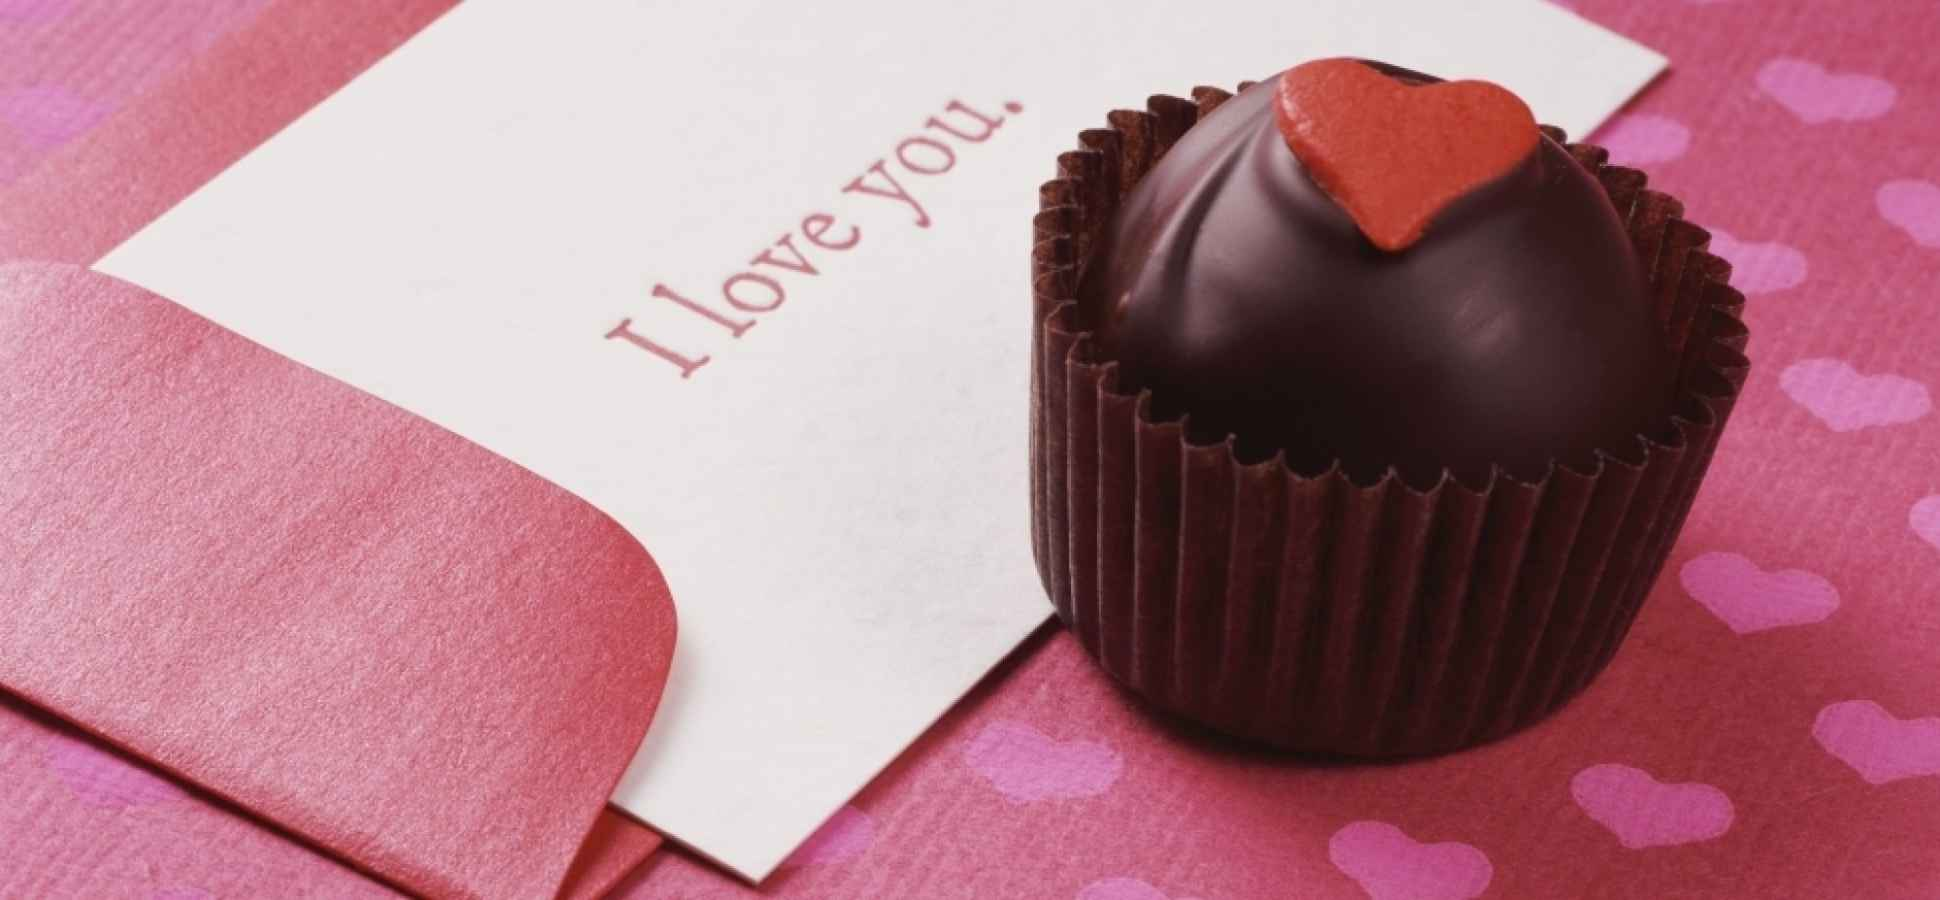 6 Ways to Make Your Customers Fall in Love With You